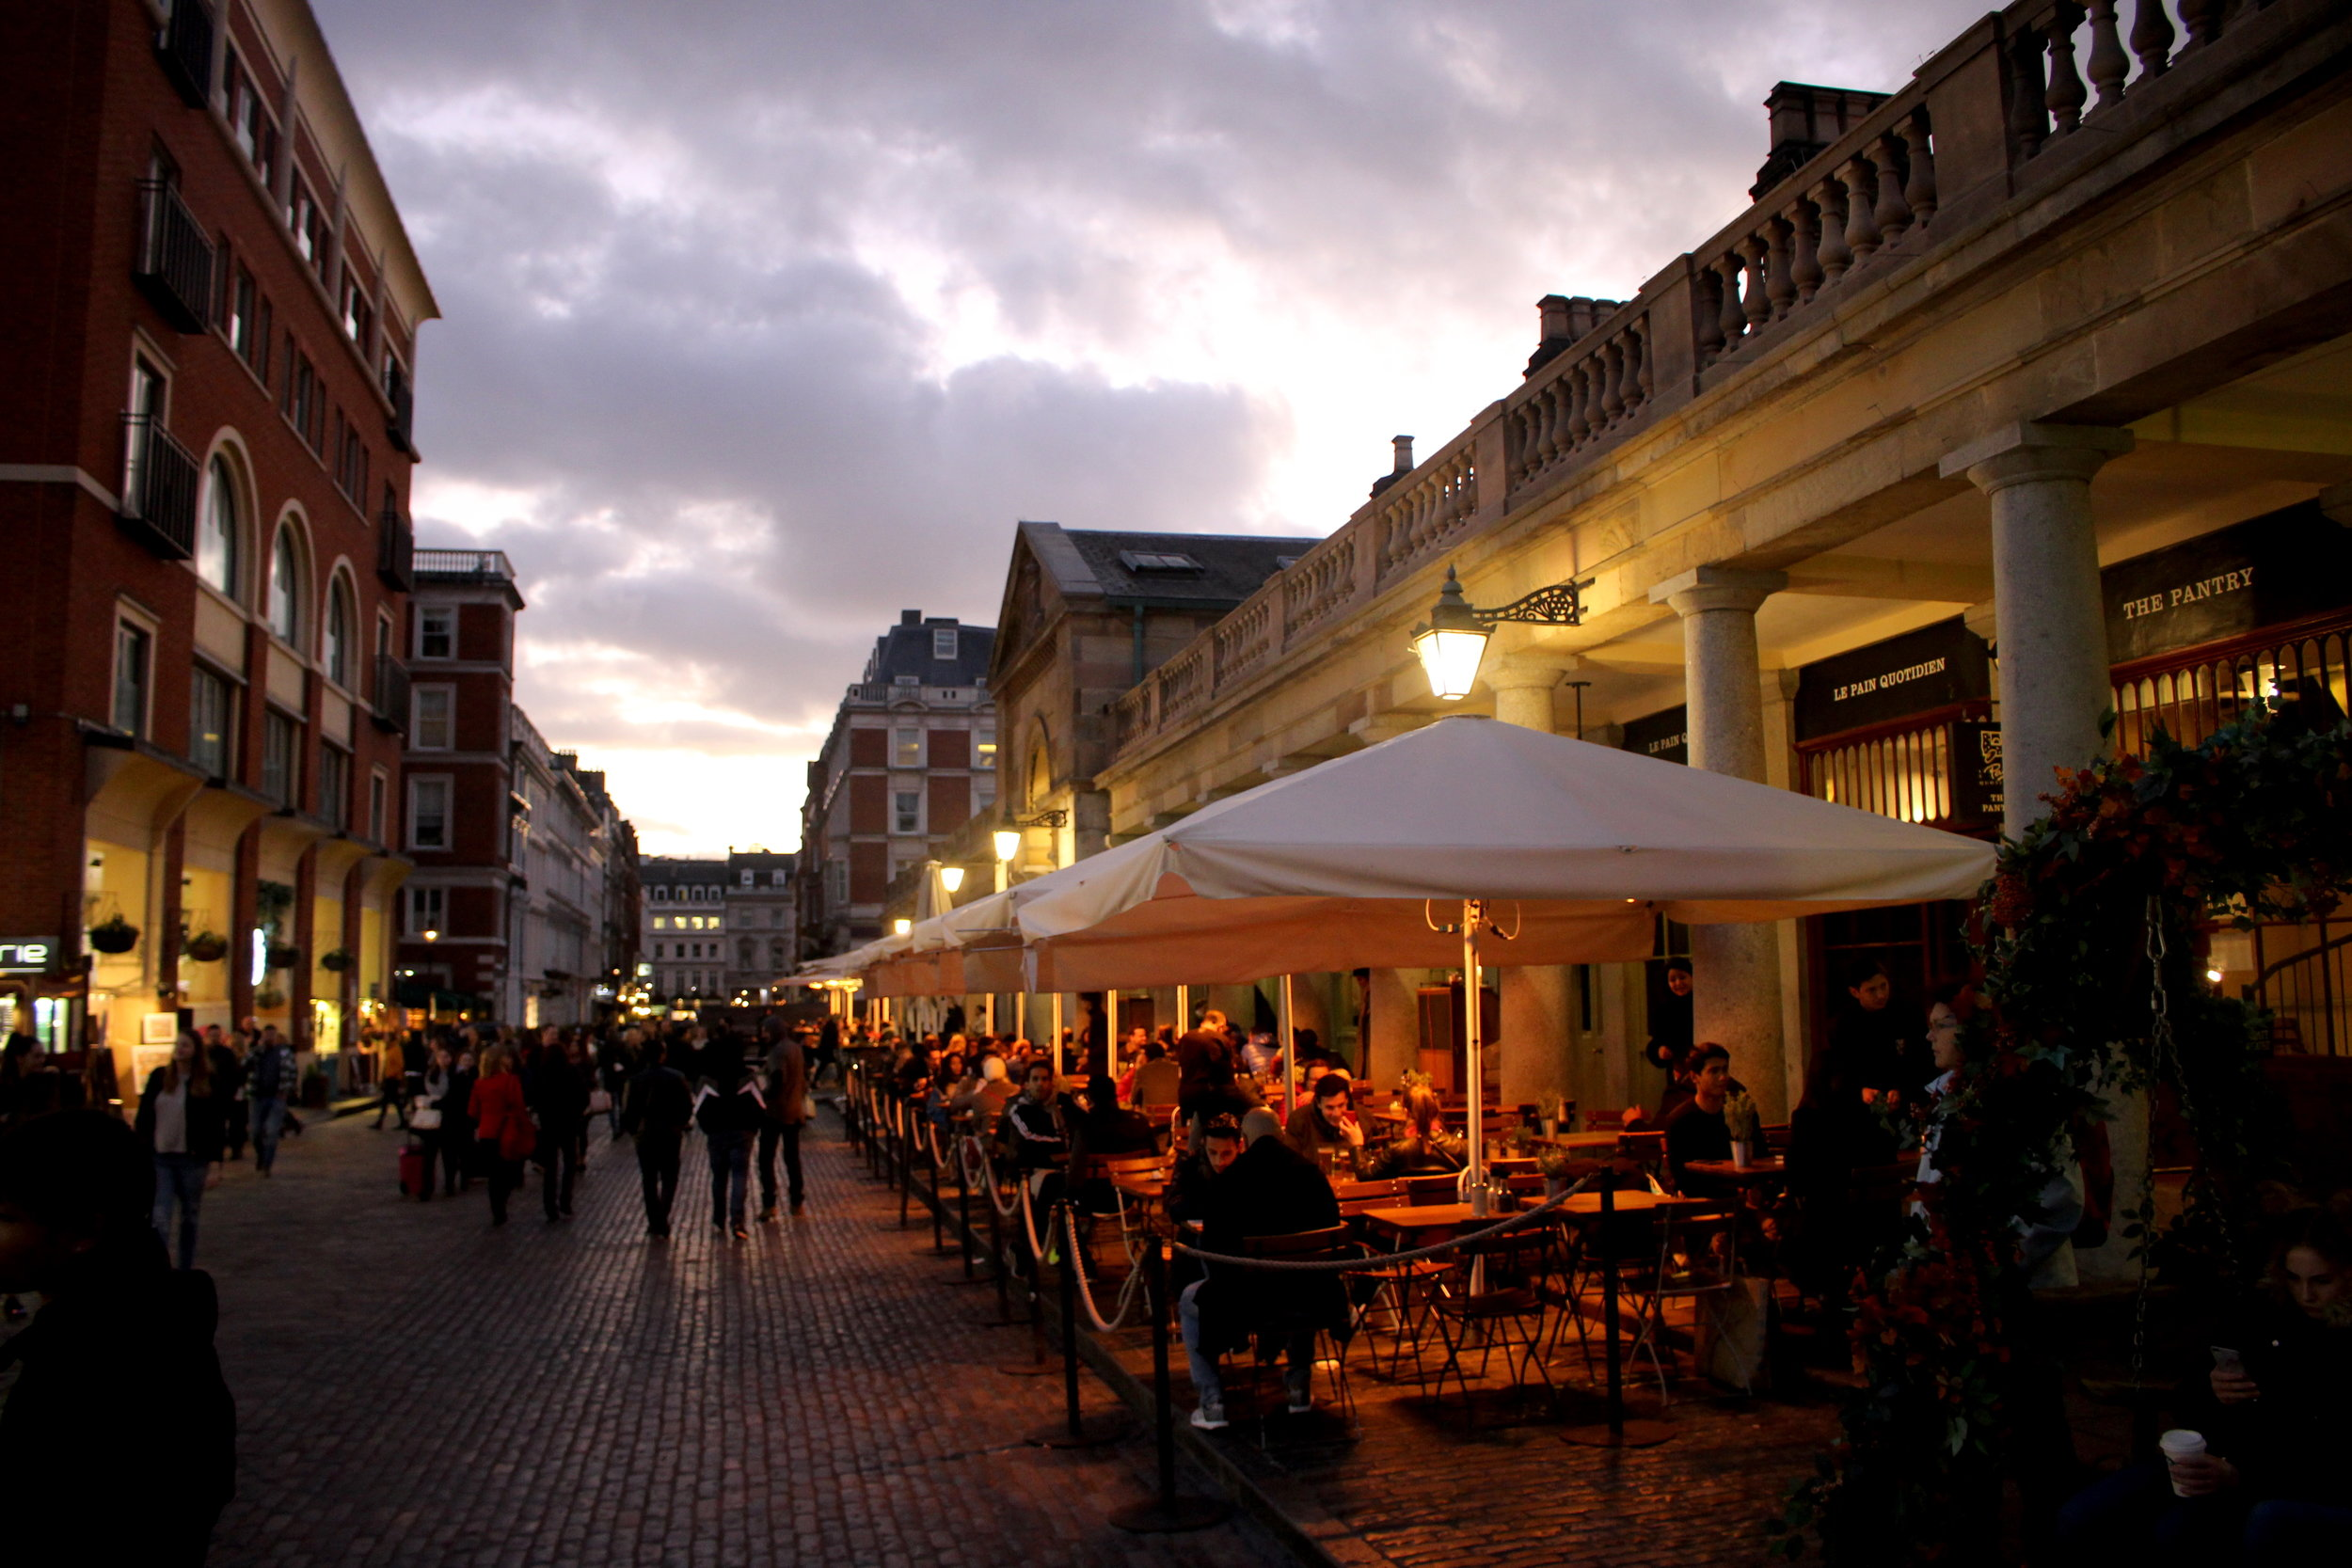 Best places to go in London, Covent Garden